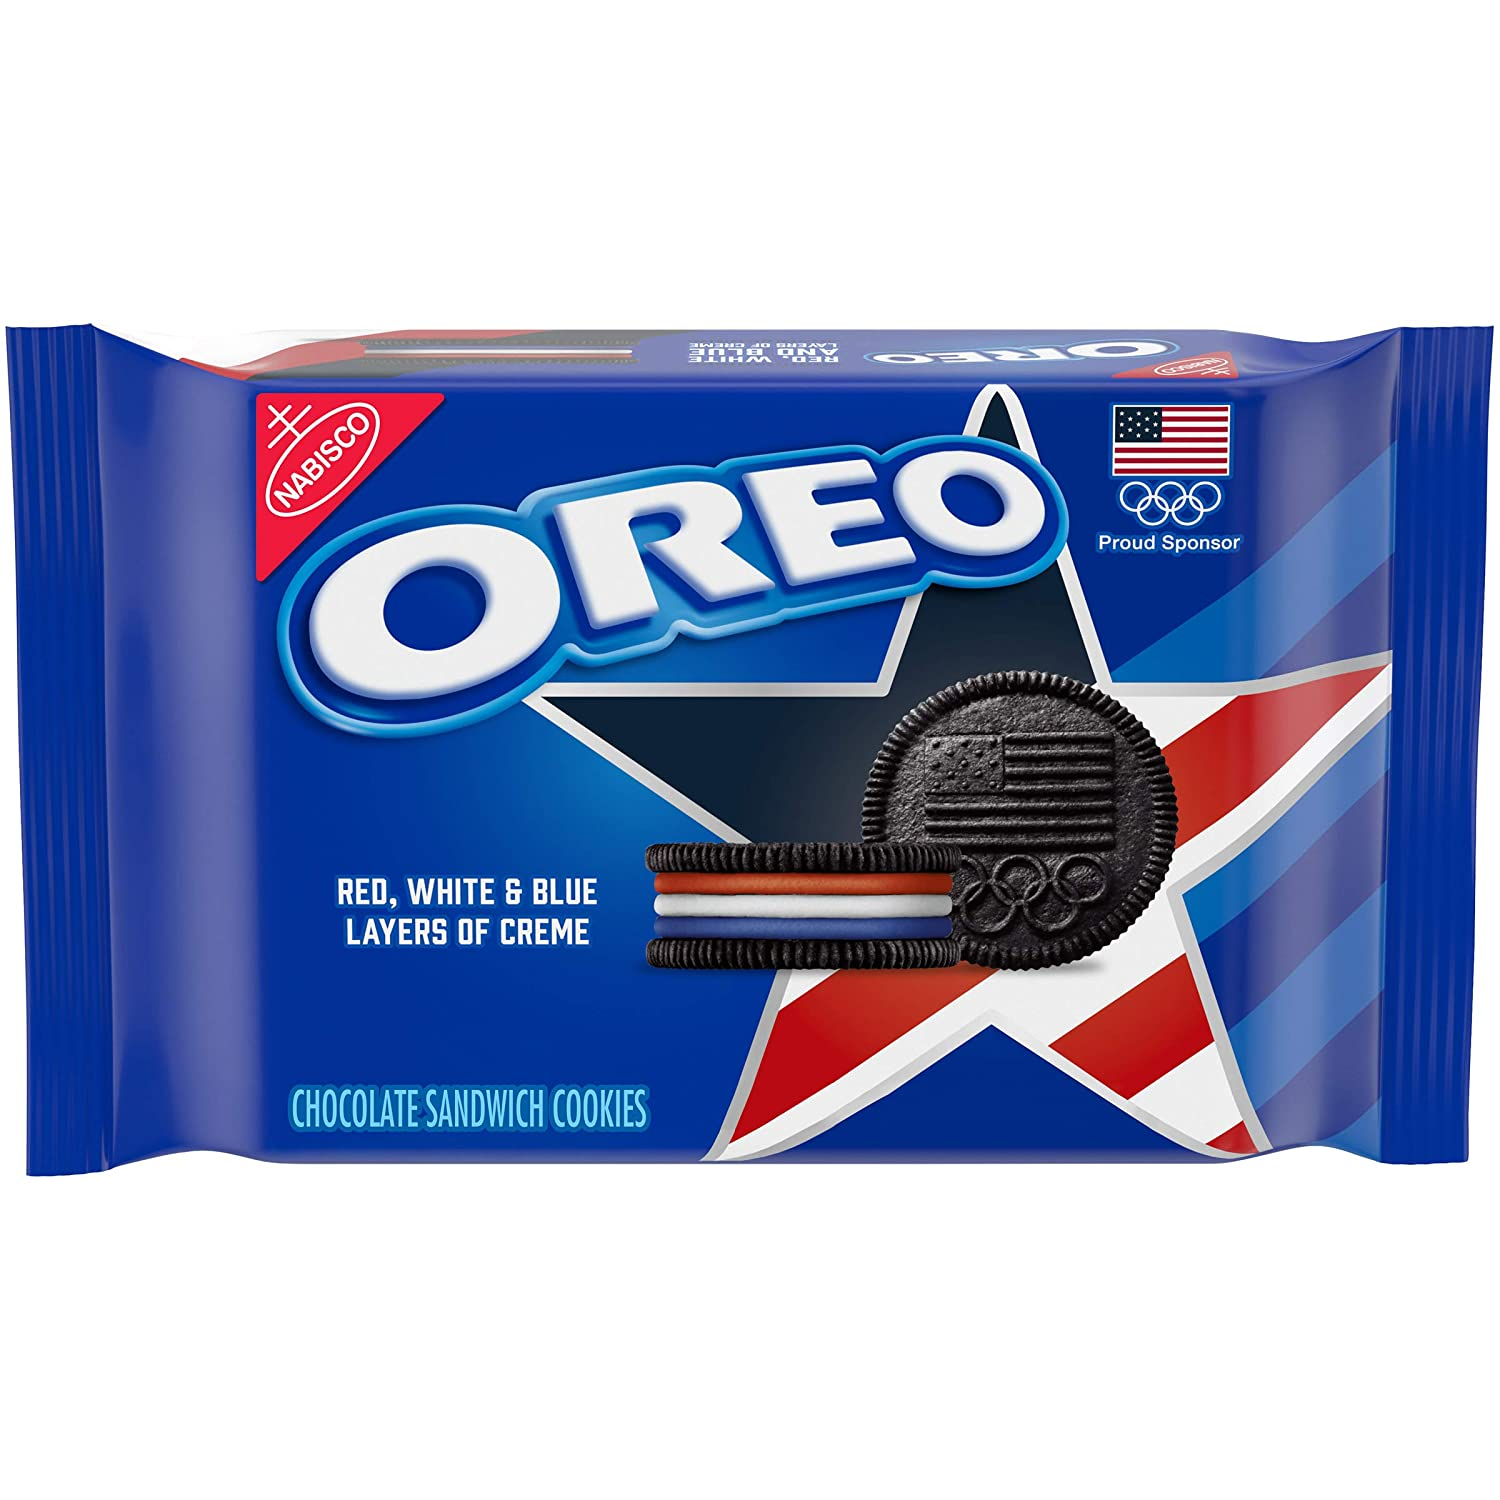 Team USA OREO Chocolate Sandwich Cookies, Limited Edition, 1 Pack (13.2 oz.)